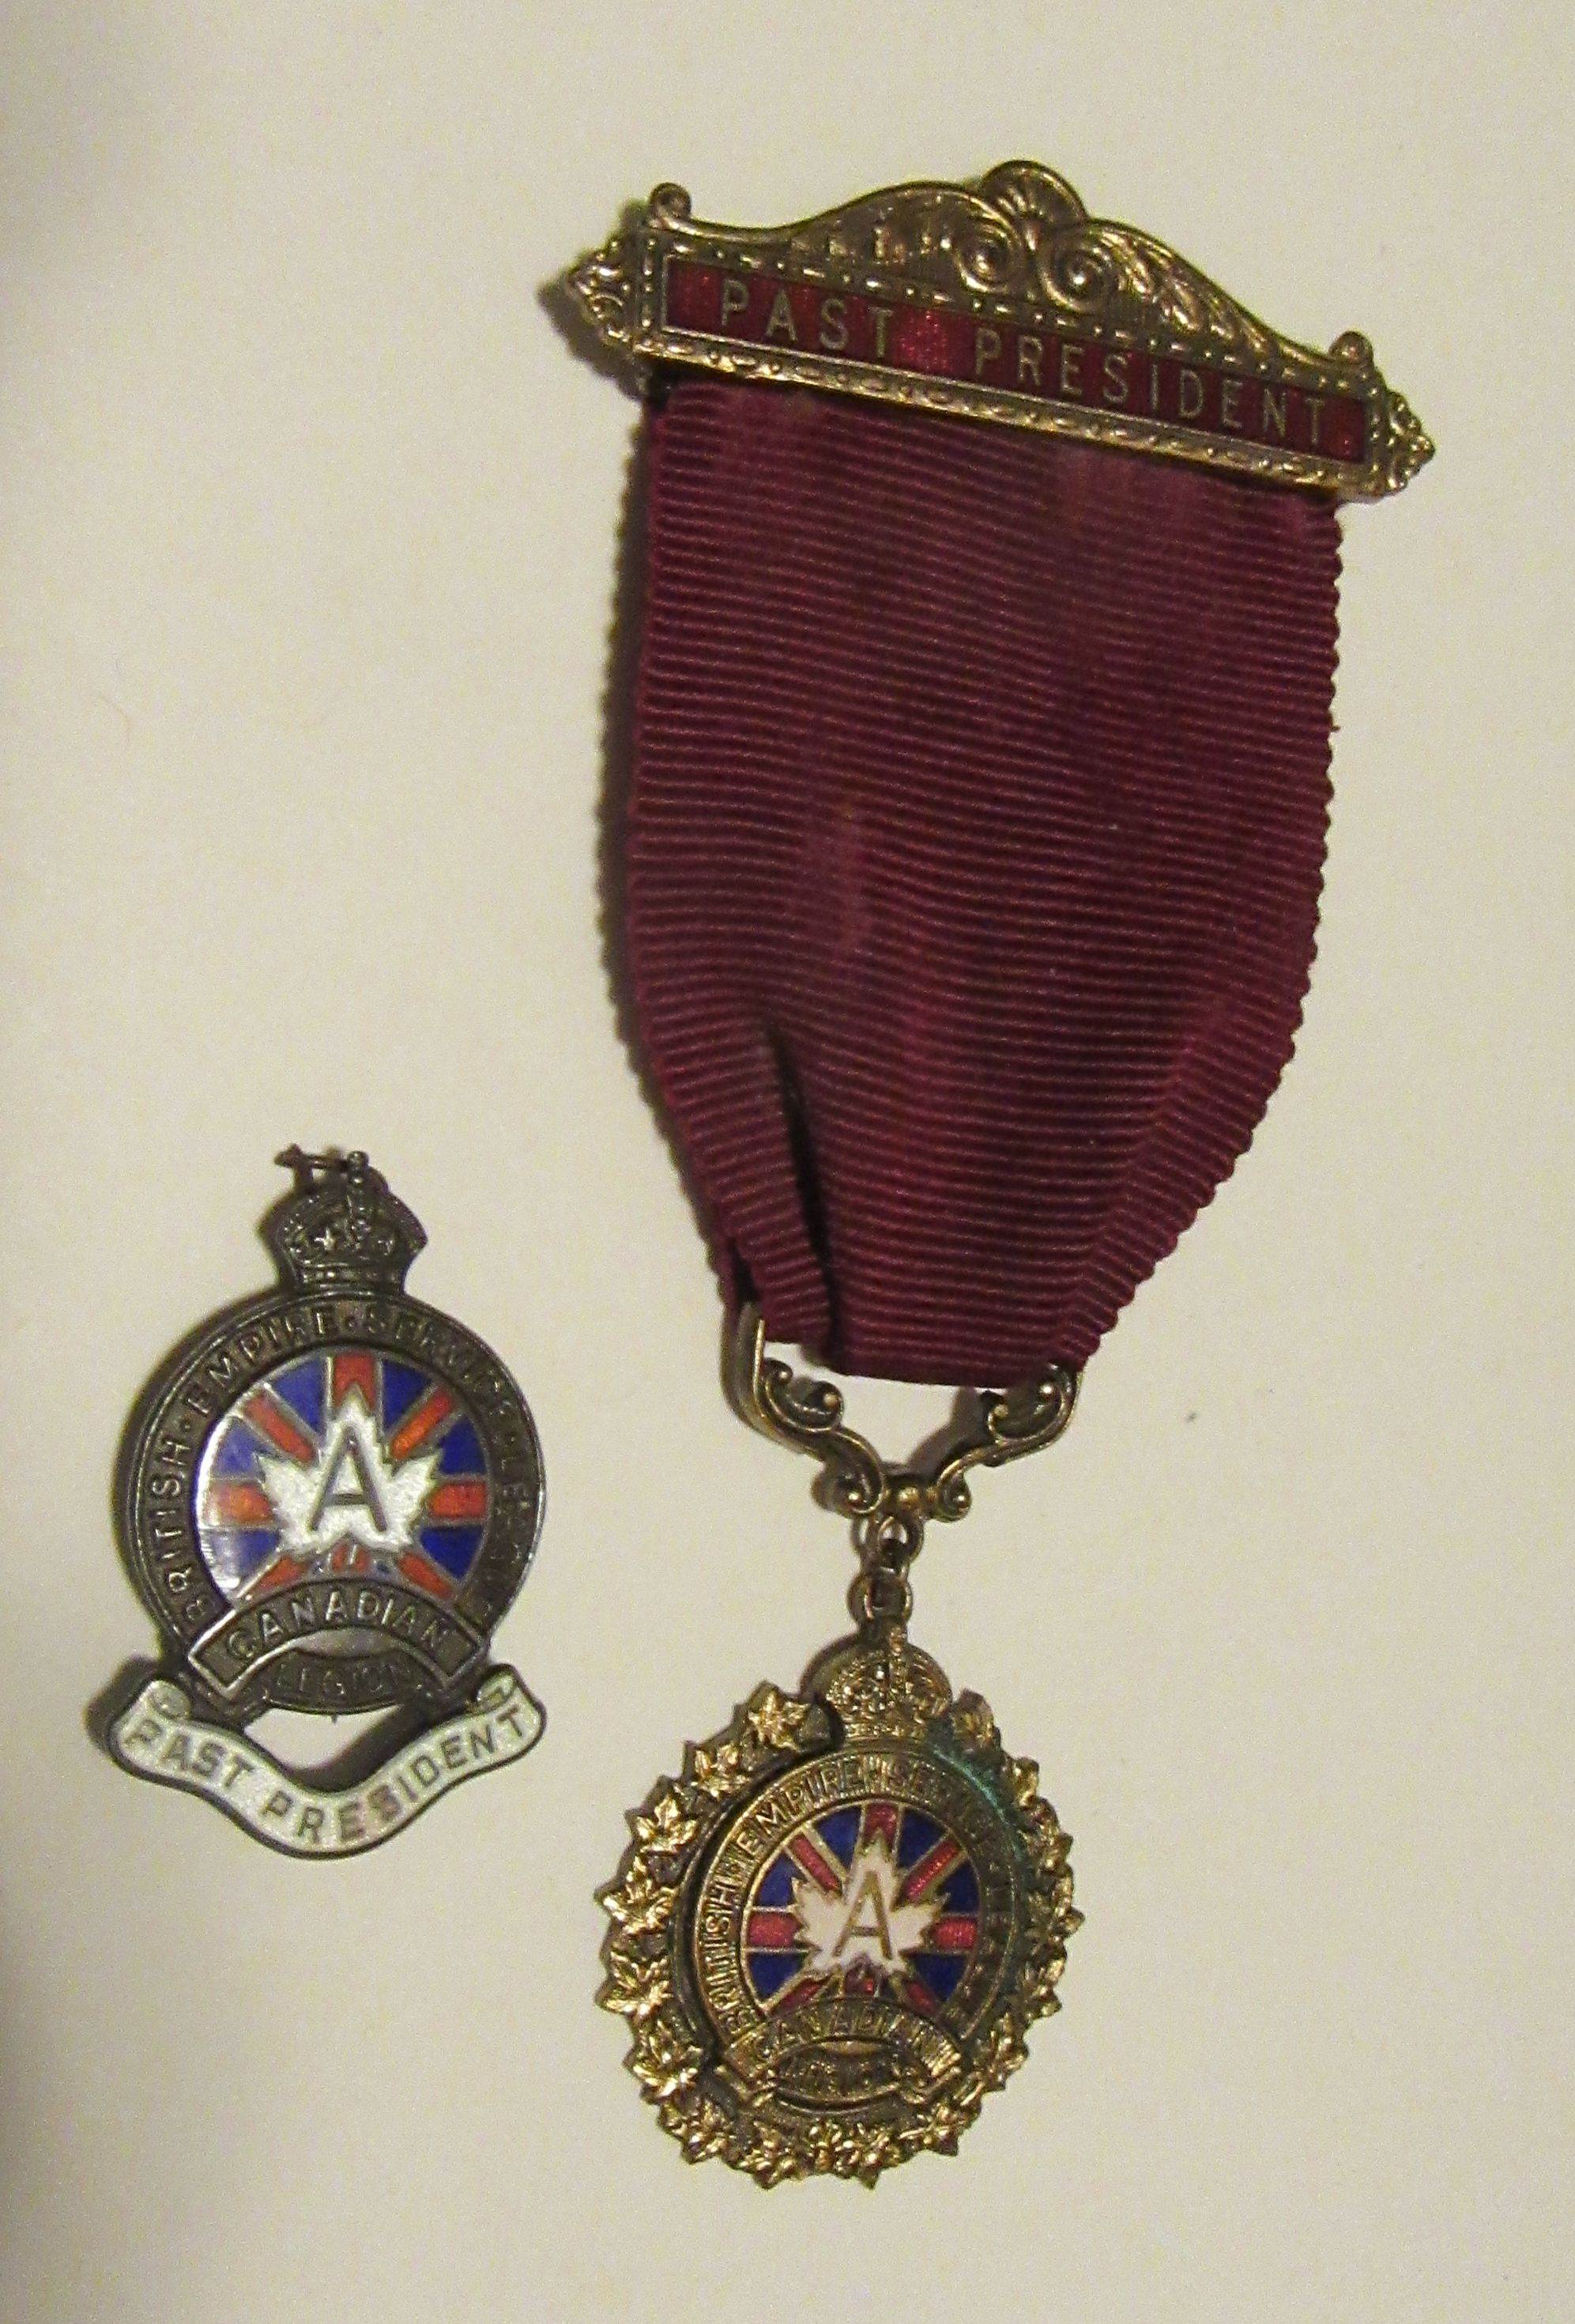 NORMAN HIPSON'S 1947 pRESIDENTS PIN